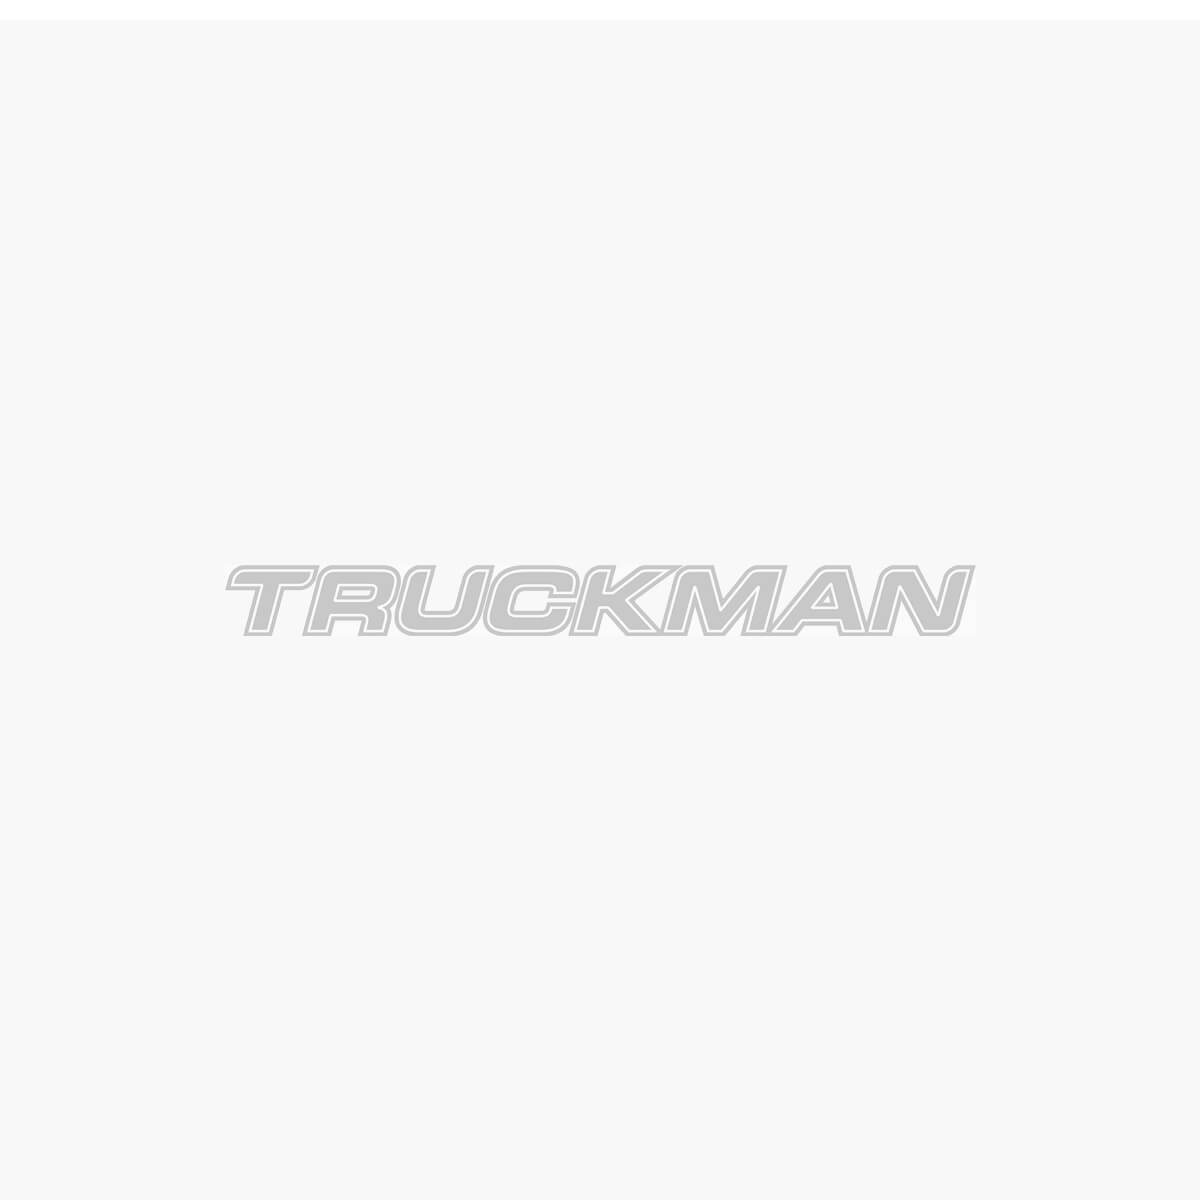 Mountain Top Roller Tonneau Cover L200/Fullback Mk8-9 (15 on) DC